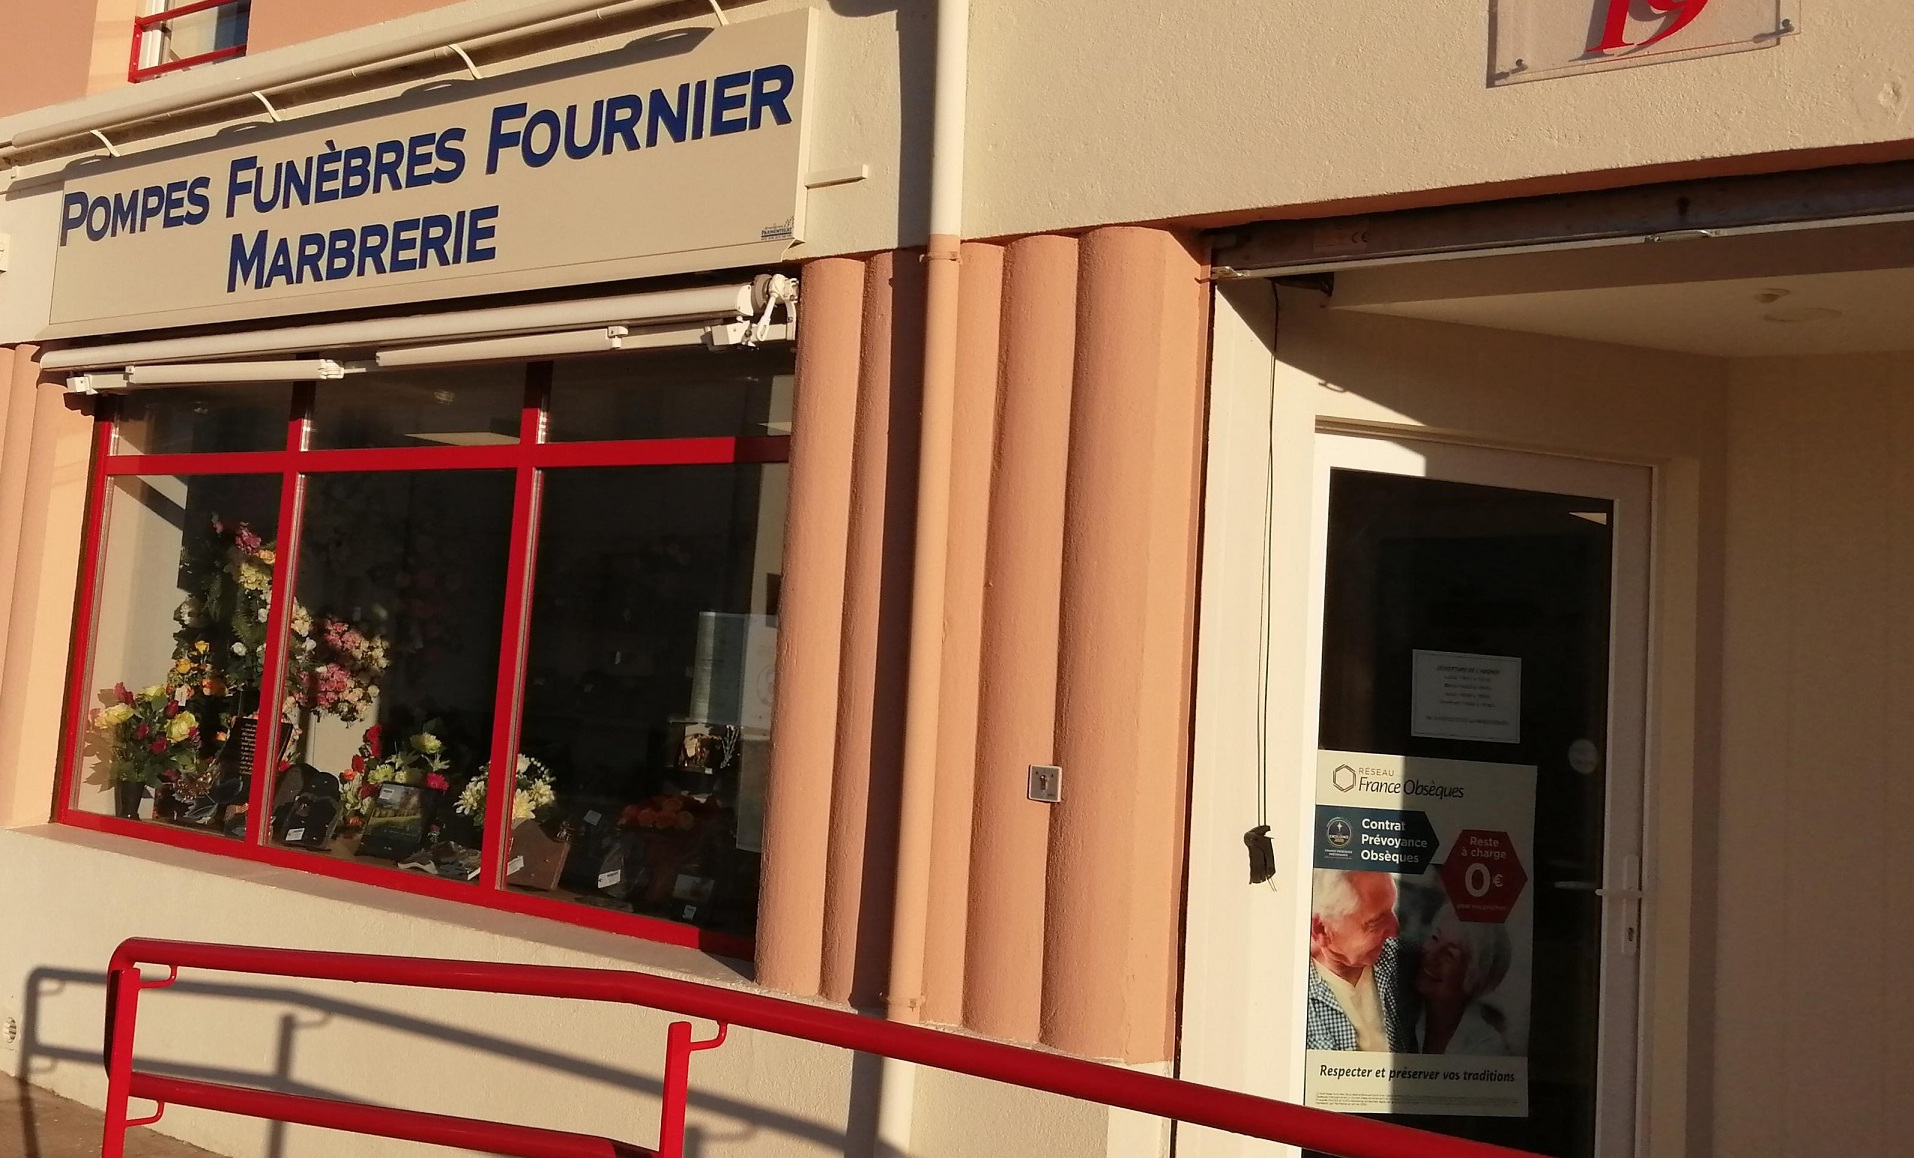 France-Obseques-Pompes-funebres-Fournier-Eloyes-Facade